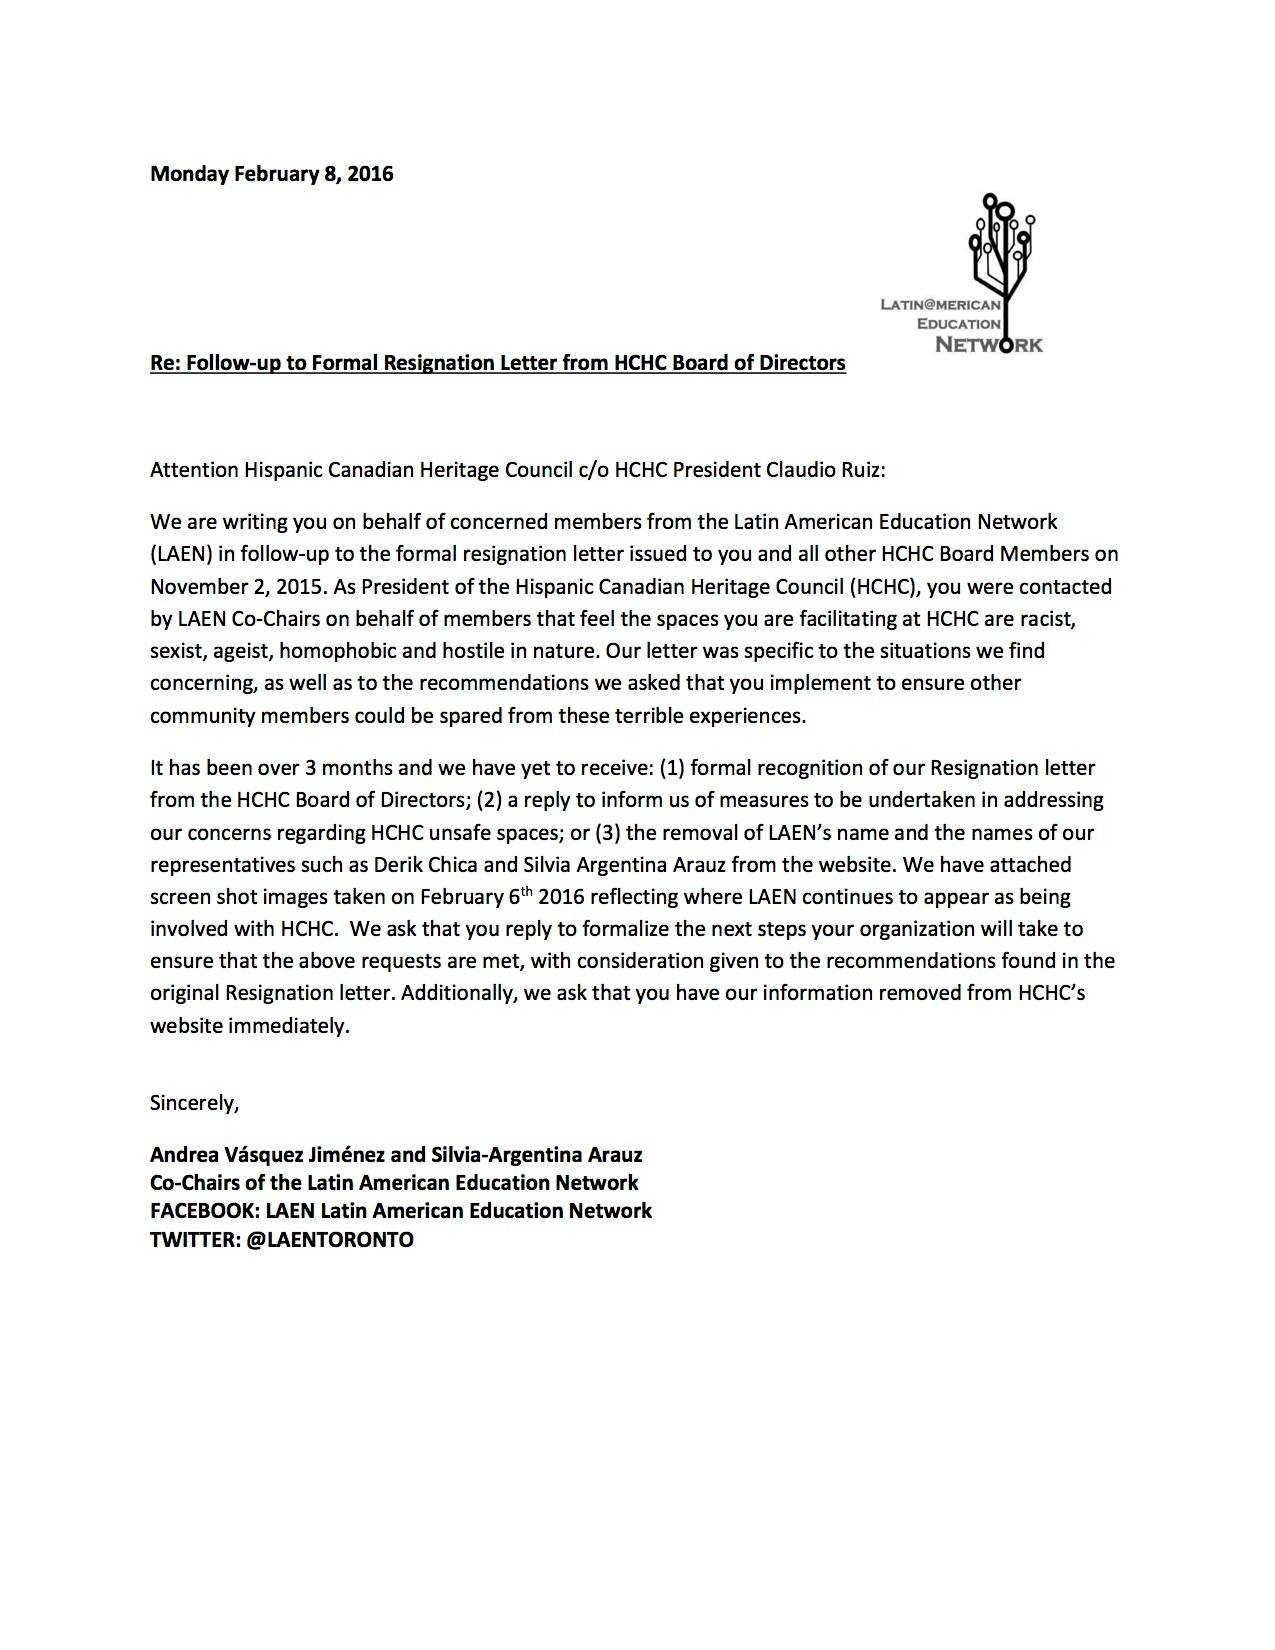 Follow Up To Formal Resignation Letter From HCHC Board Of Directors | Latin  American Education Network